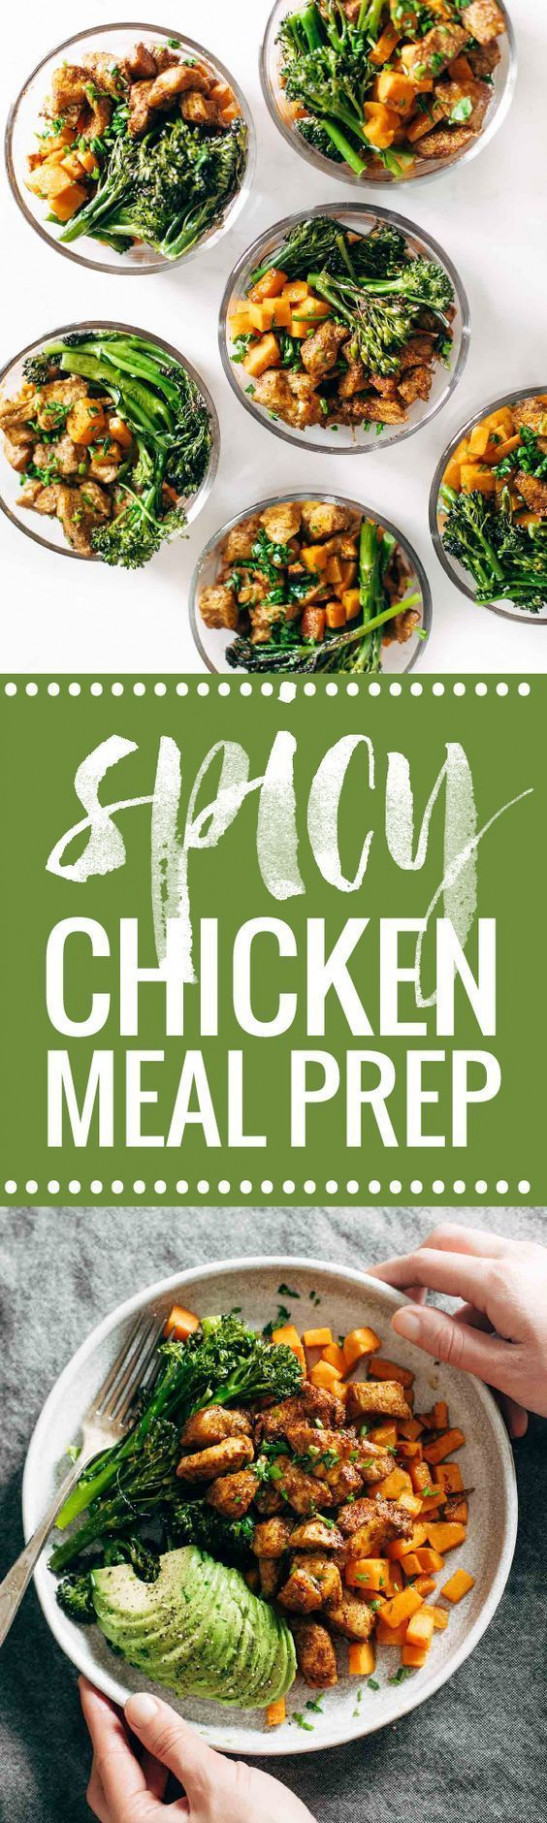 Spicy Chicken Sweet Potato Meal Prep Magic Bowls - recipes of healthy meals